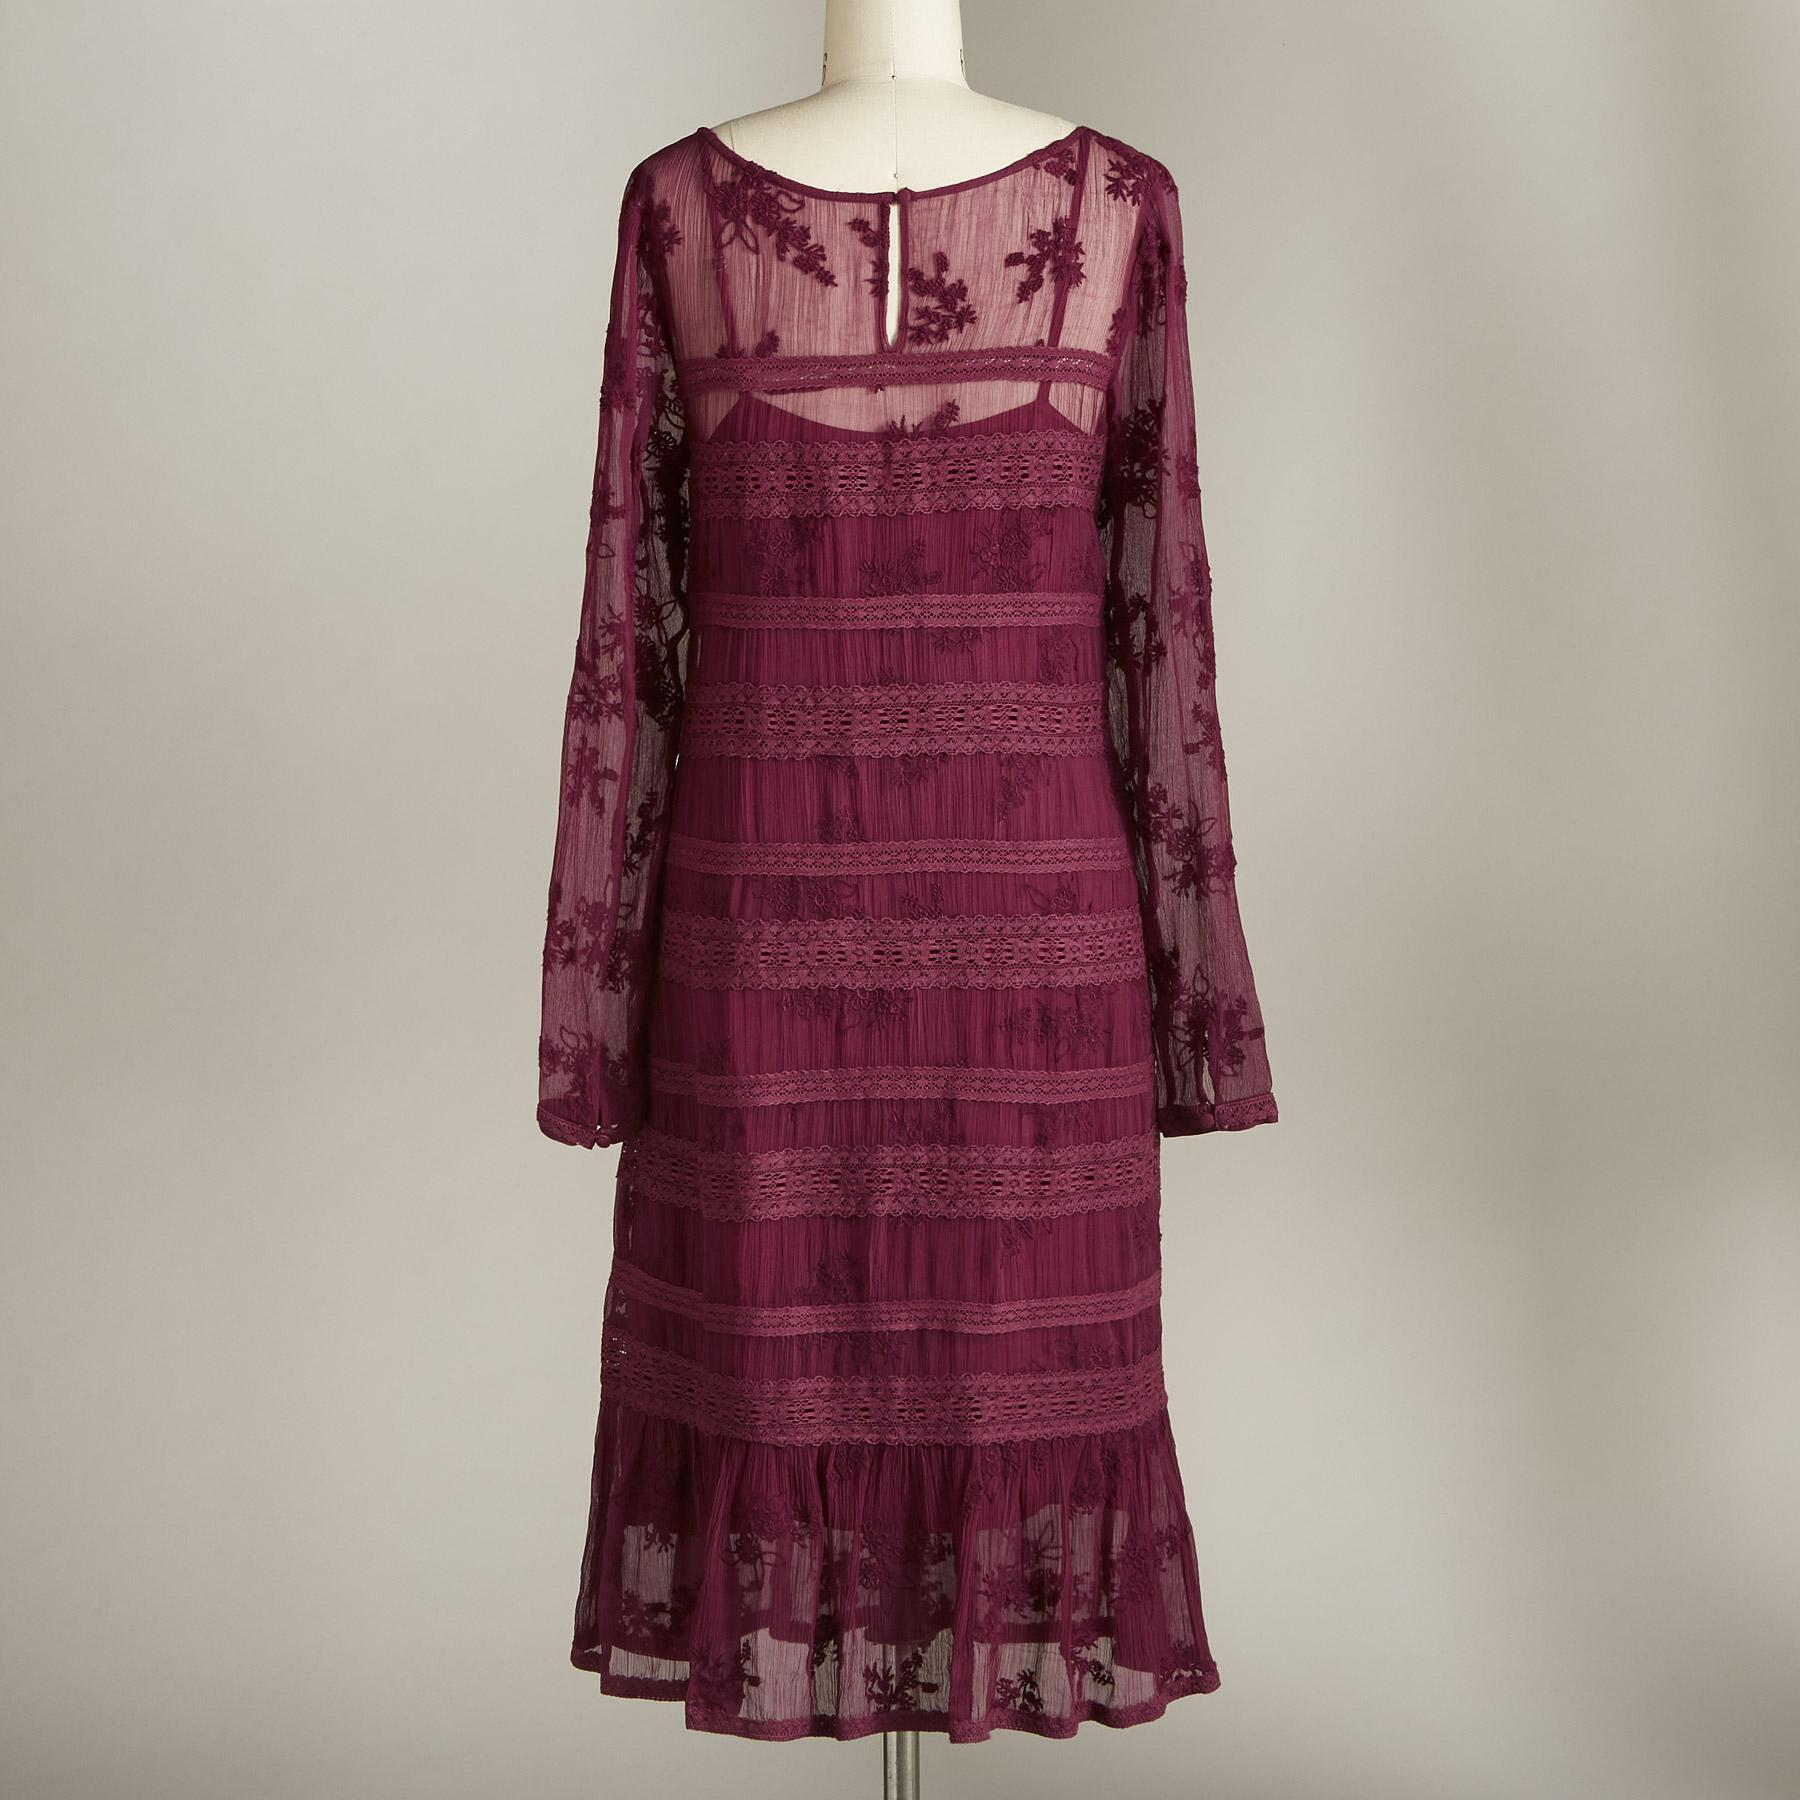 POIRET DRESS PETITE: View 2